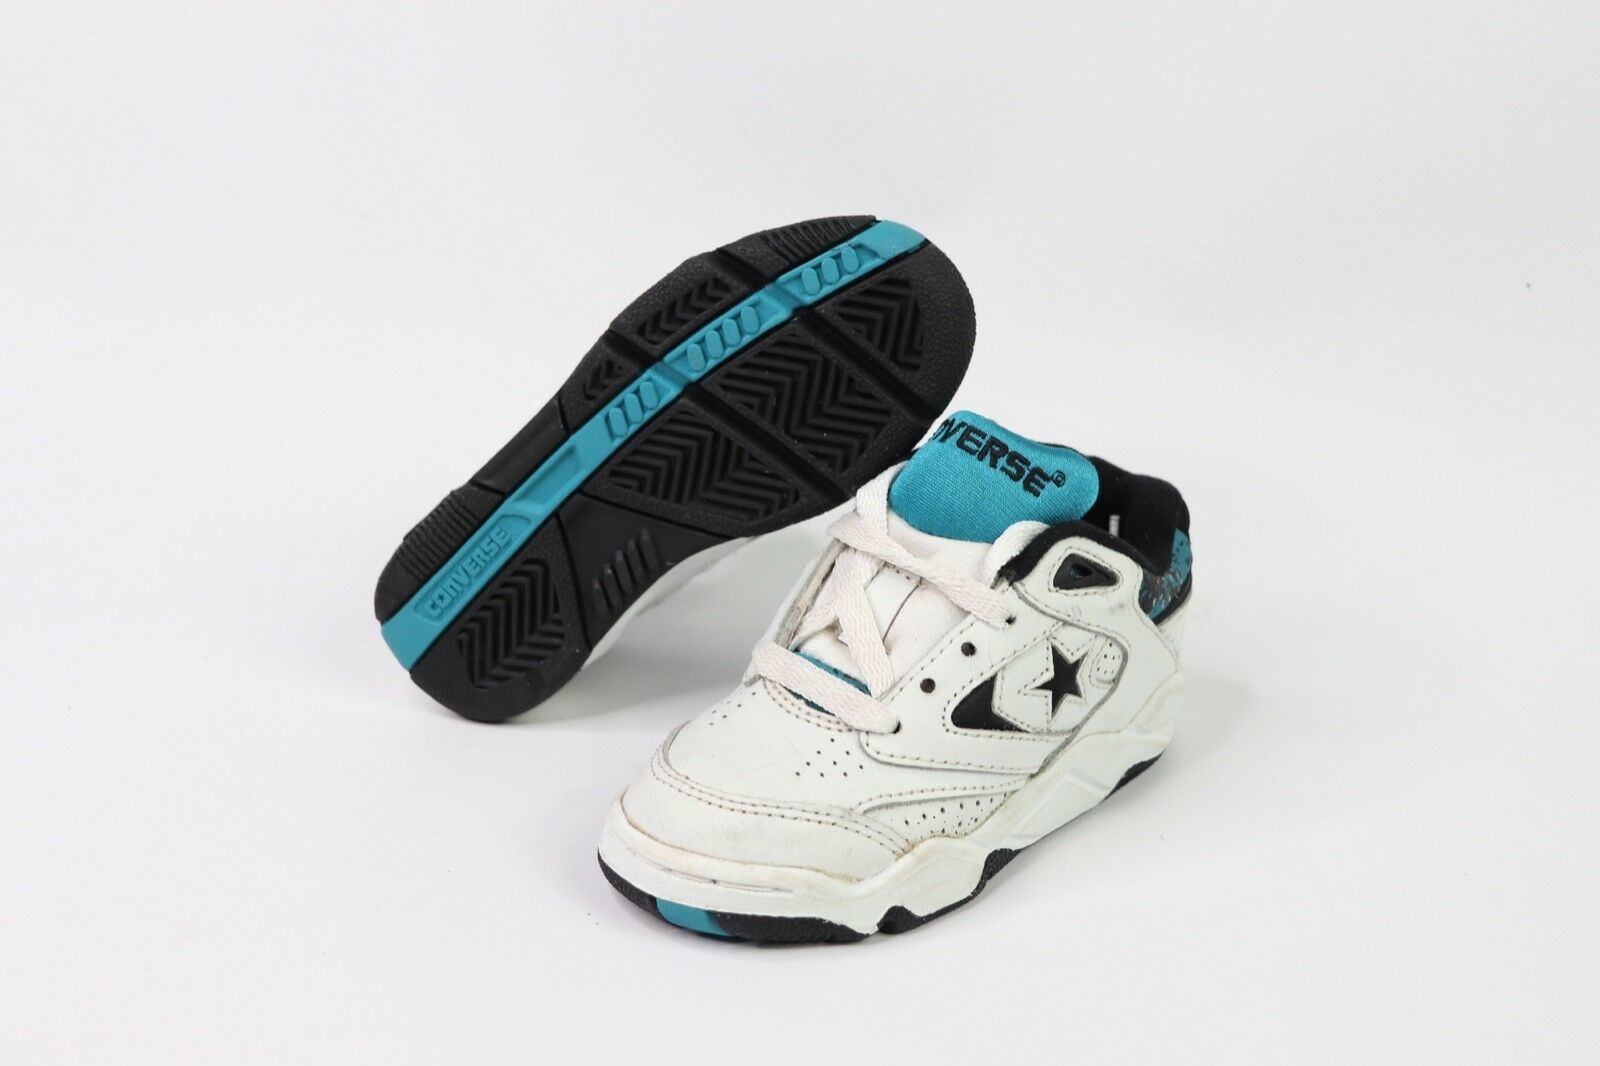 Vintage 90s New Youth 9.5 Powergame Lea Ox Leather Basketball Shoes White Blue